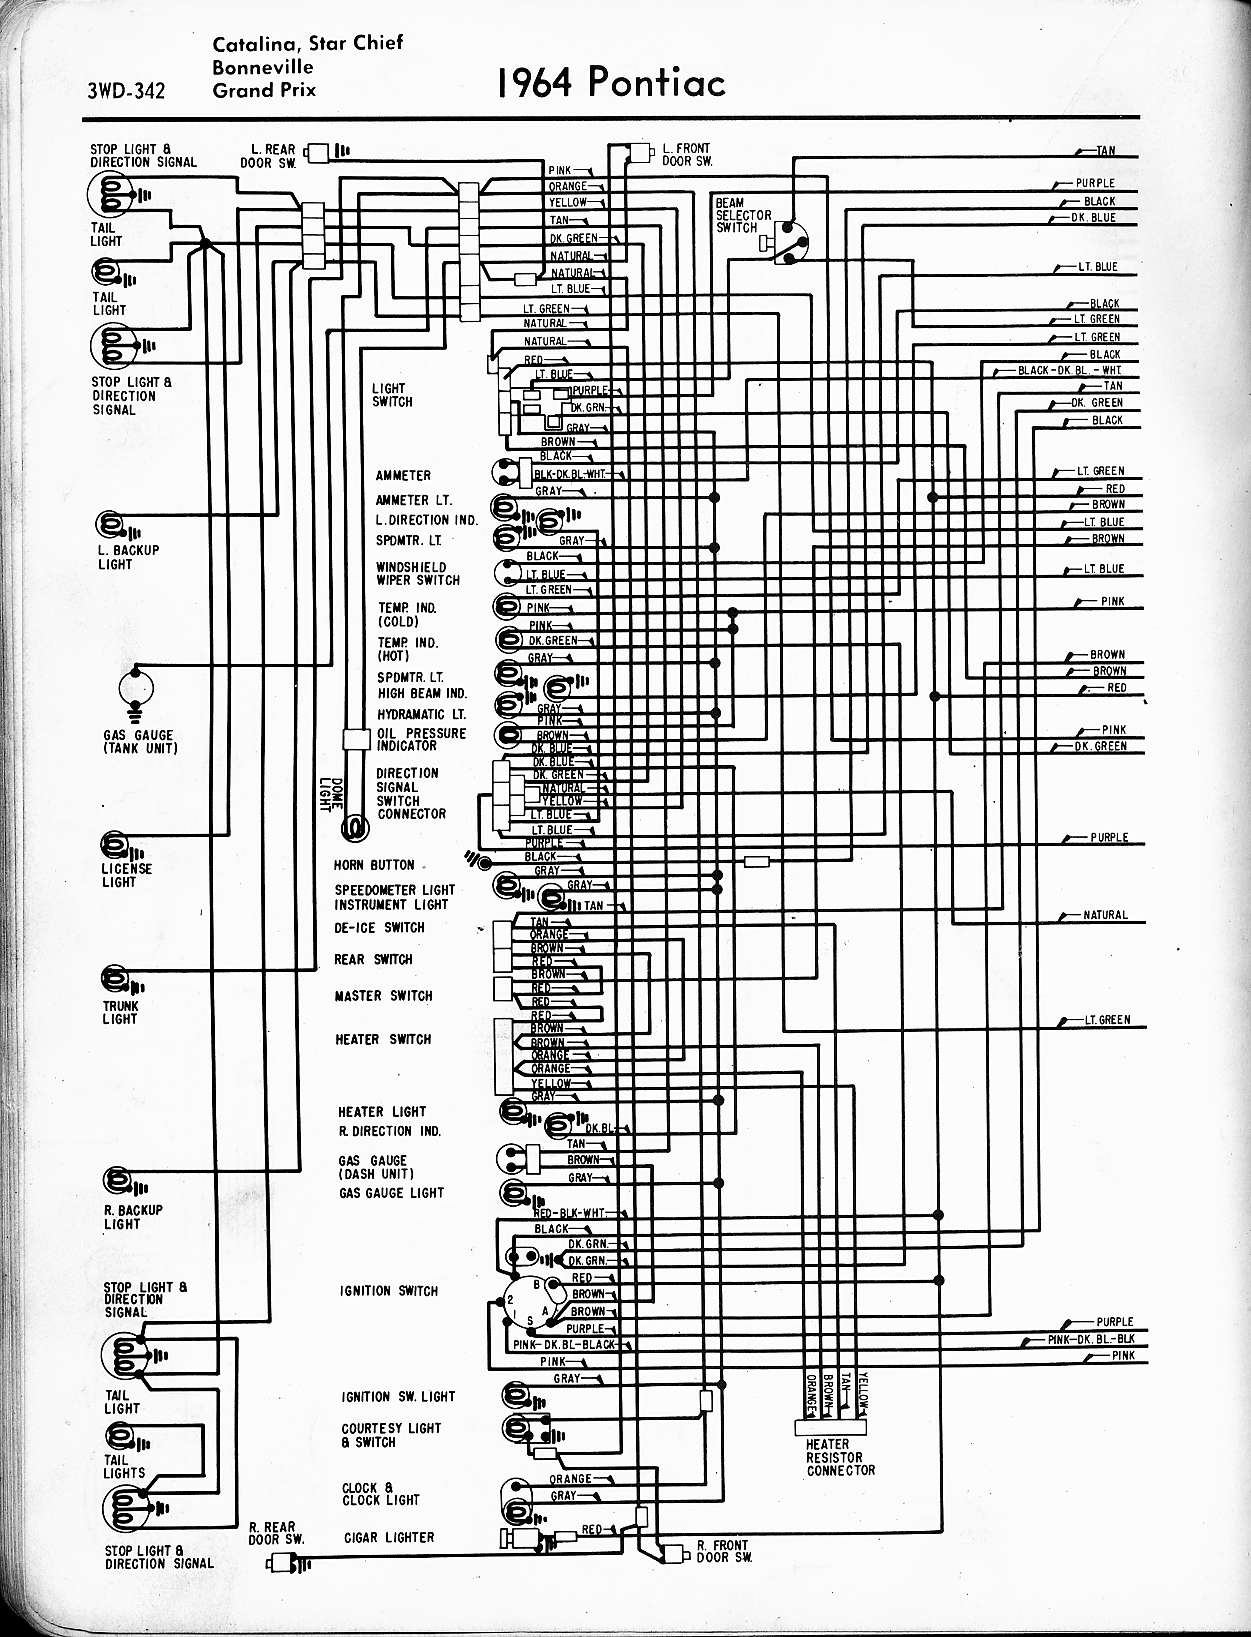 1967 Bonneville Wiring Diagram Simple Schema 2006 Grand Prix Completed Diagrams Mustang Overhead Console